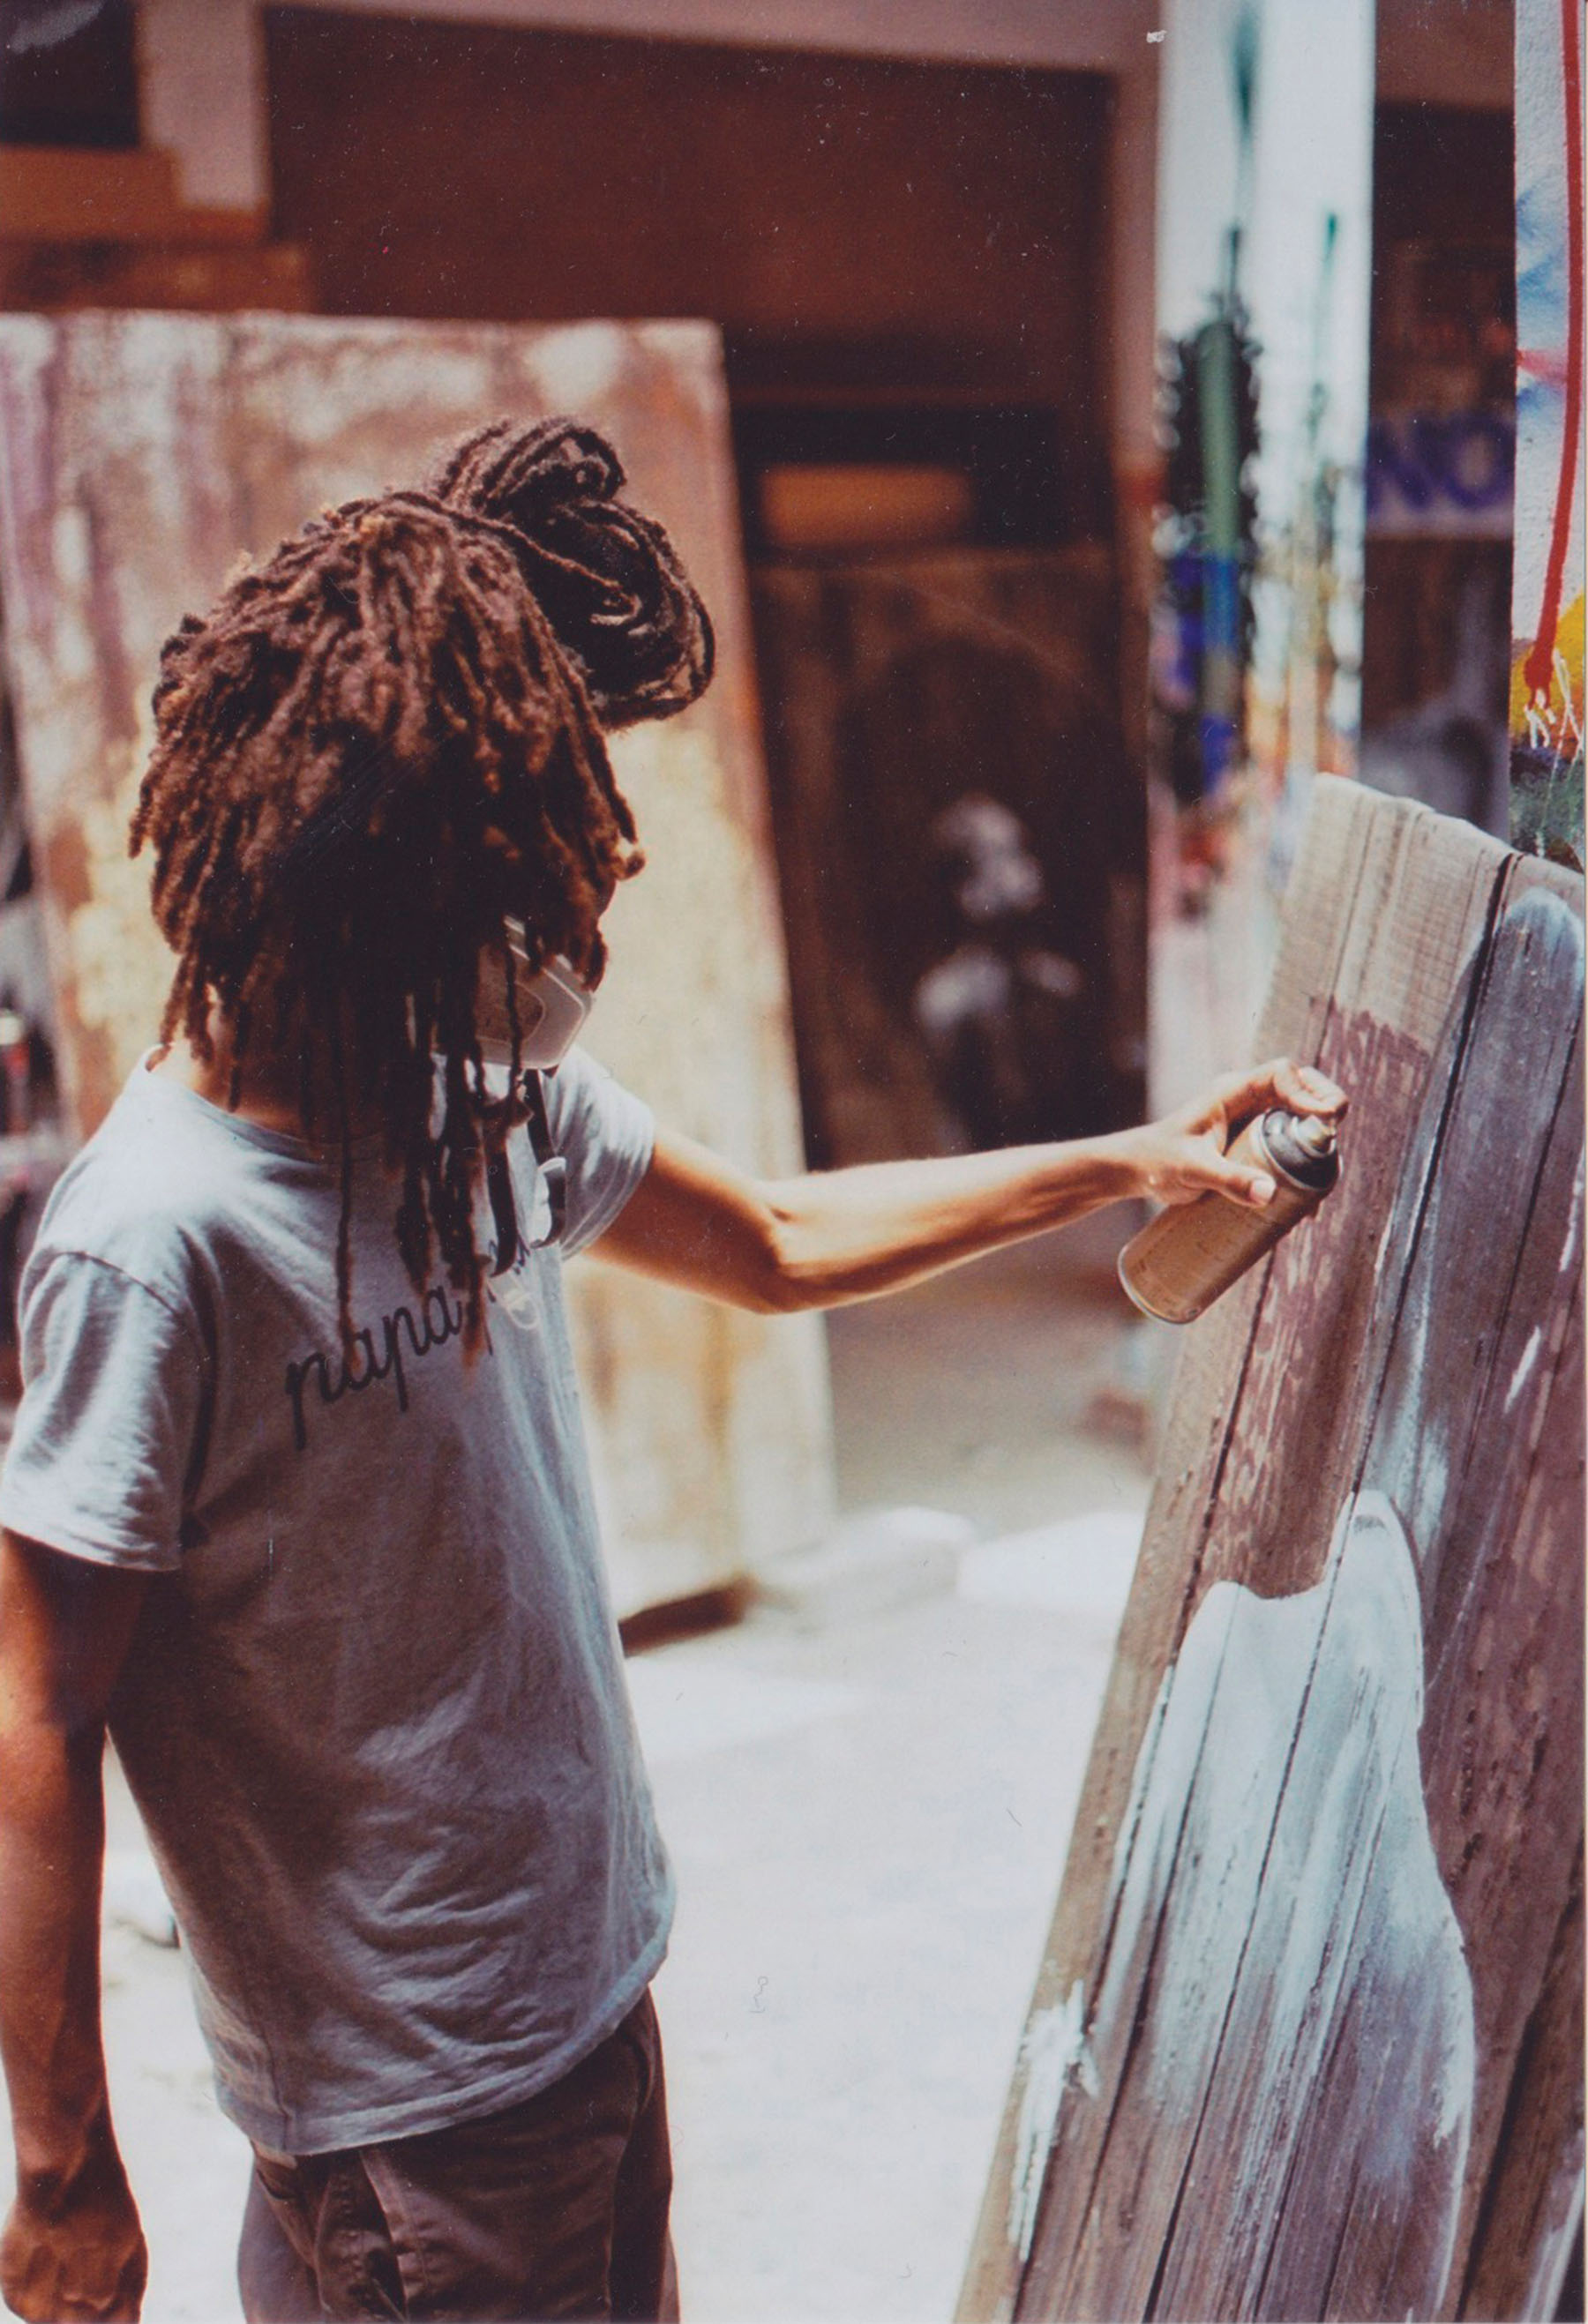 French-born painter at work